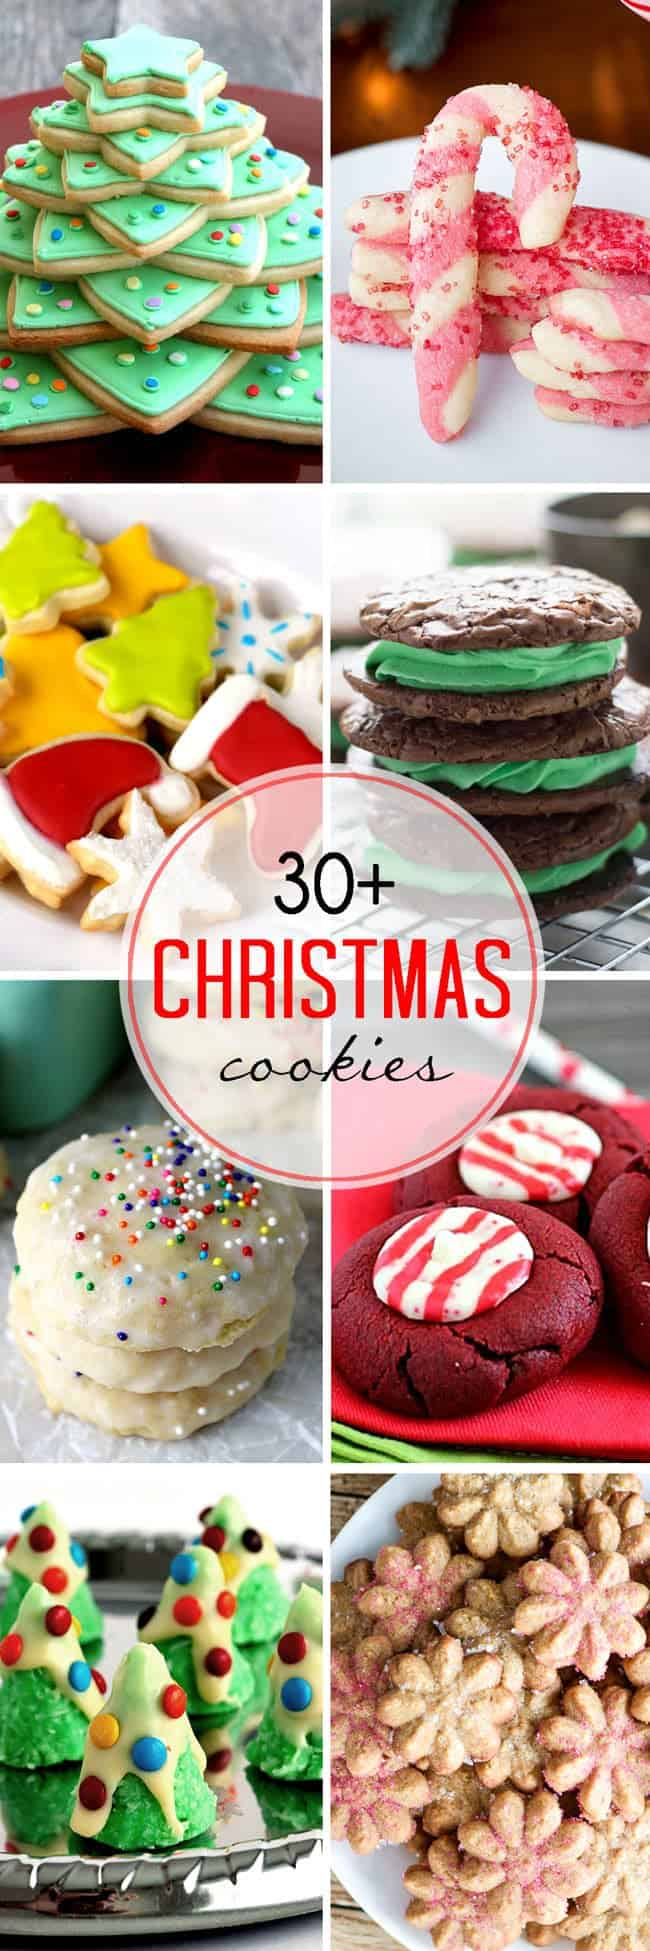 Over 30 of the Best Christmas Cookies from Your Favorite ...